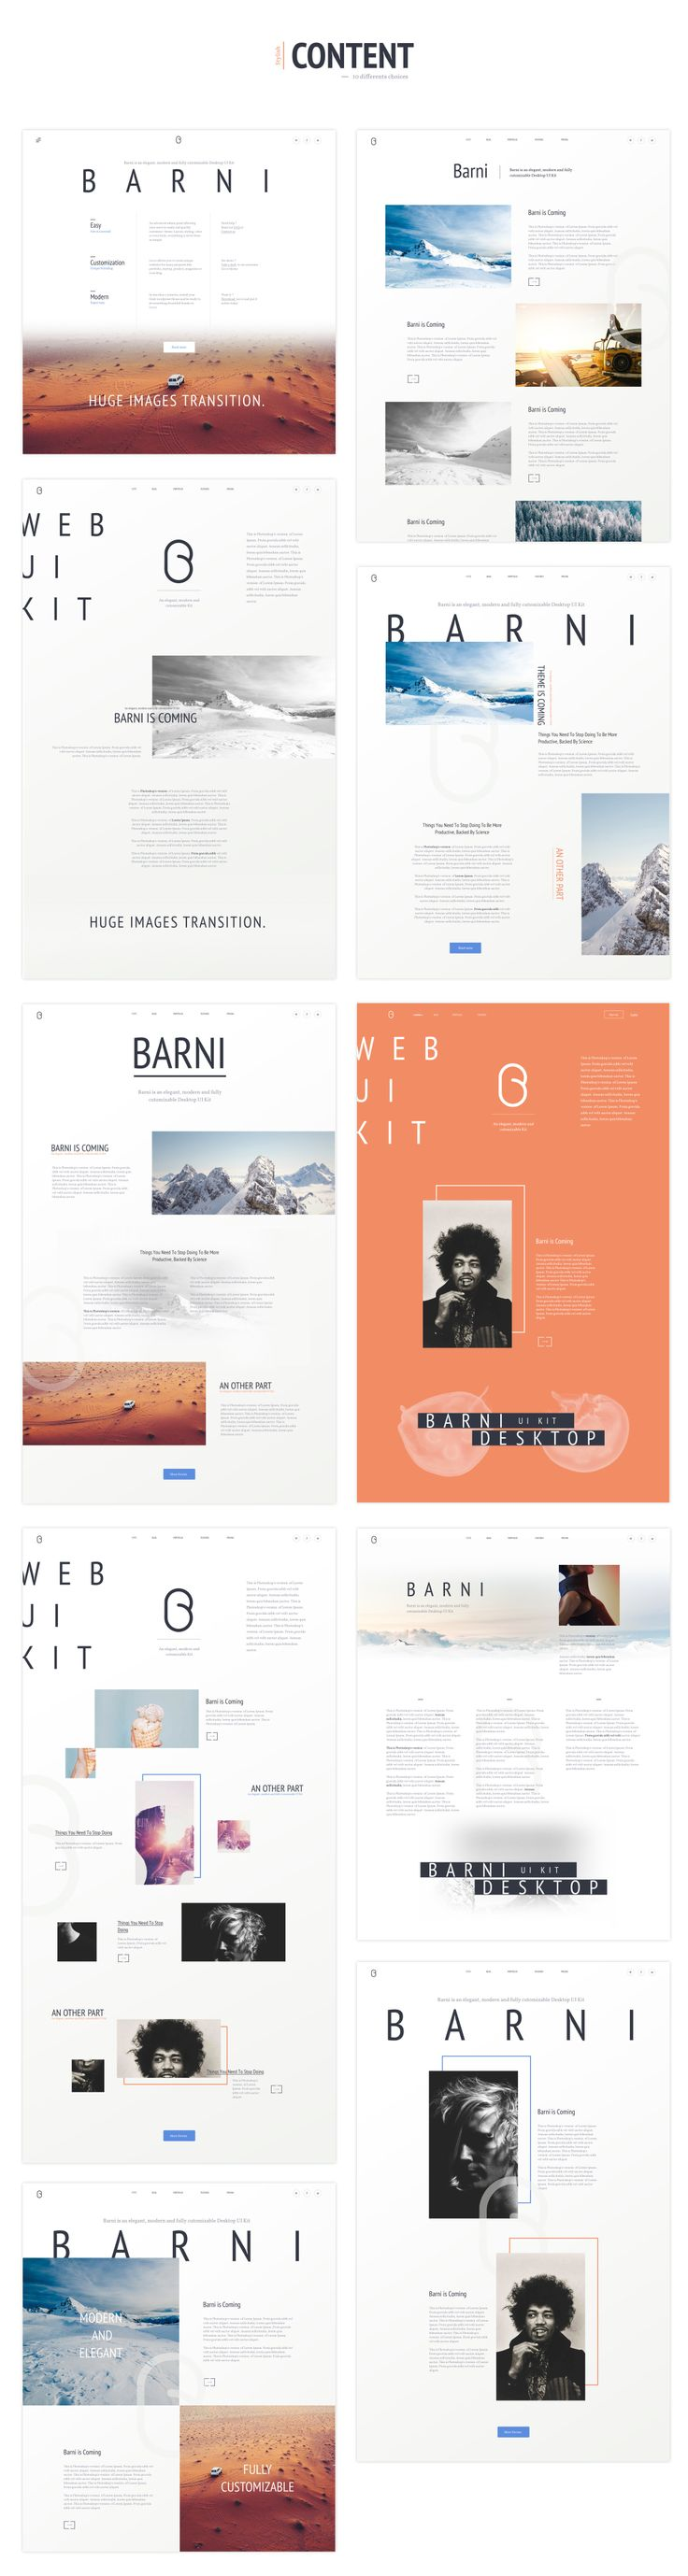 Barni for ecommerce is the third part of this Barni UI series. IIt's made out of…